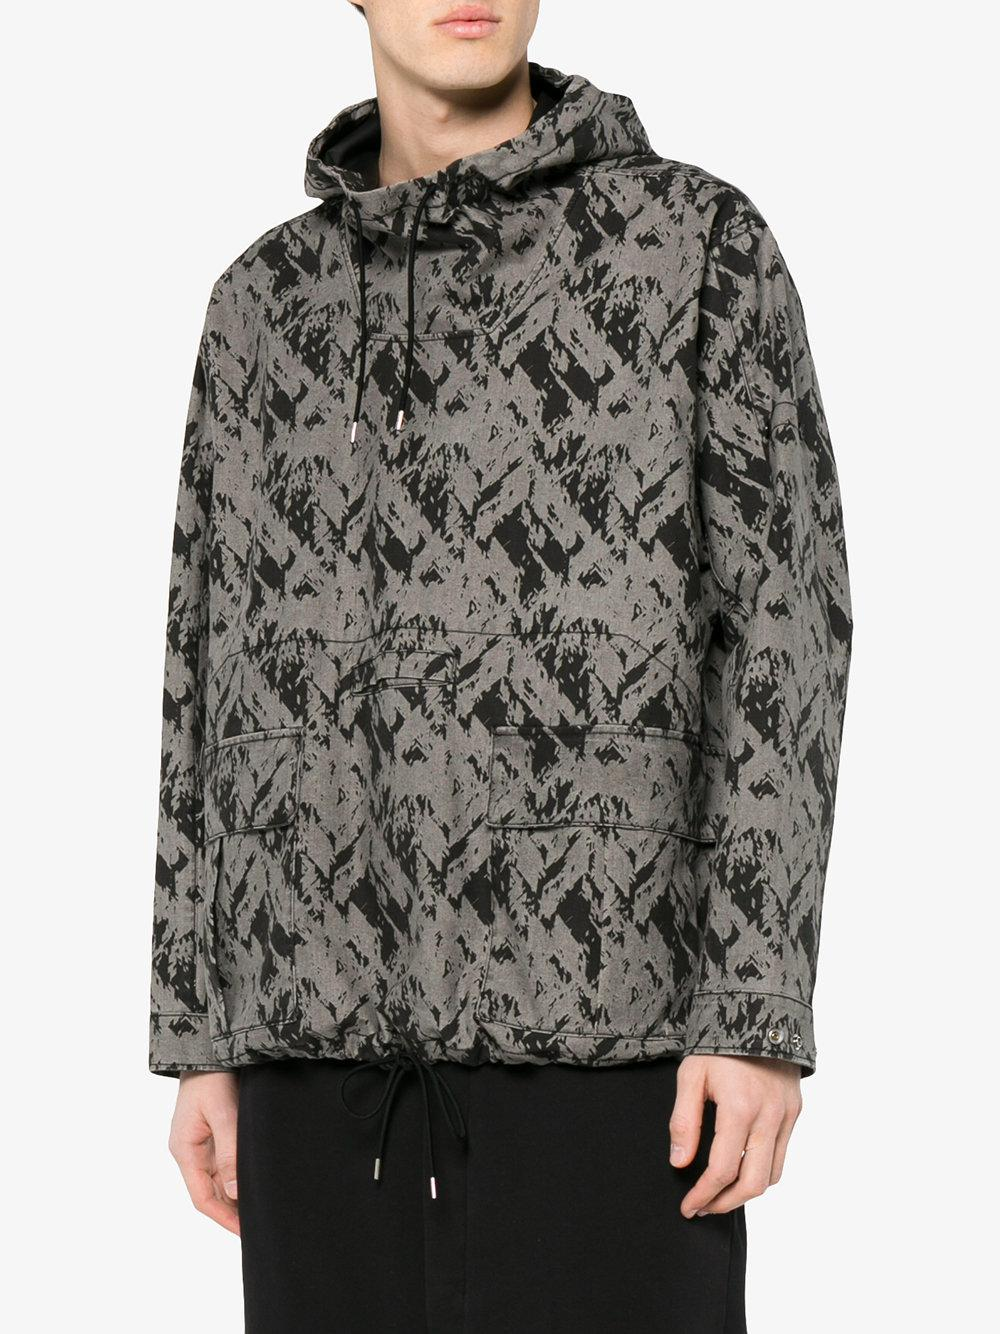 Stone Island Cotton Grey Hooded Jacket in Grey for Men